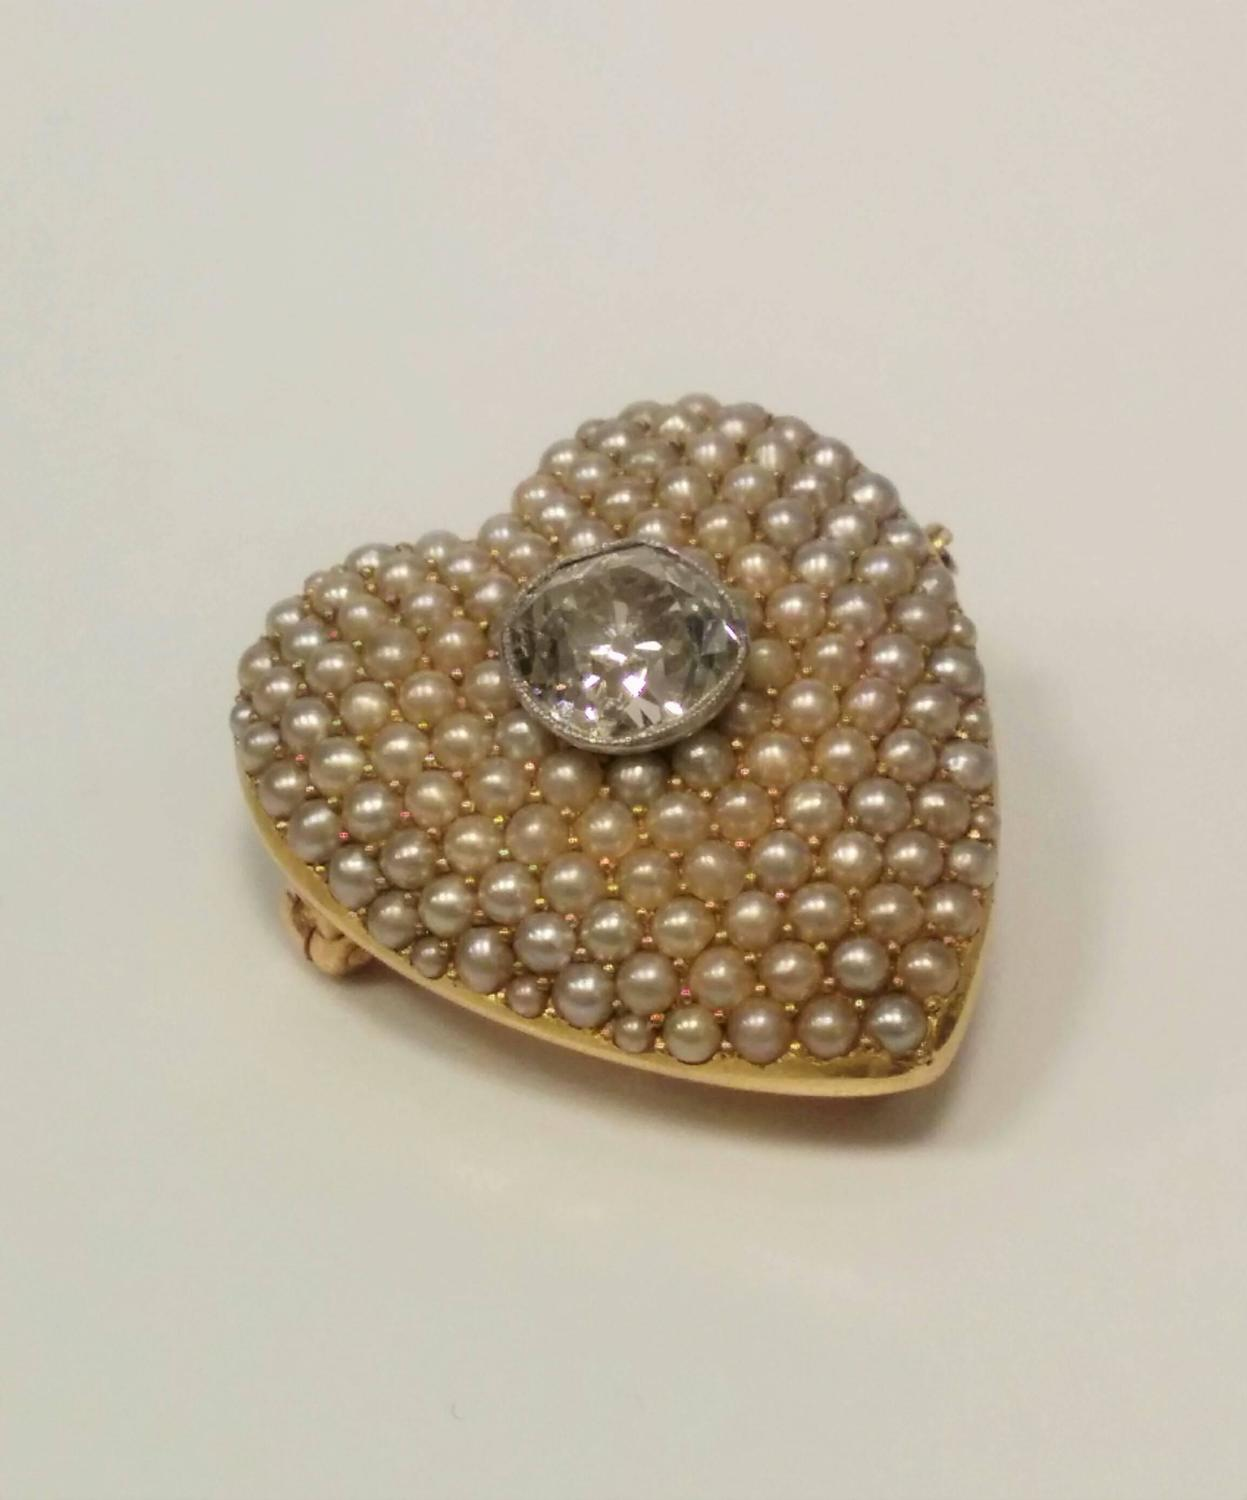 Antique diamond seed pearl gold heart pendant brooch for for The triumph of love jewelry 1530 1930